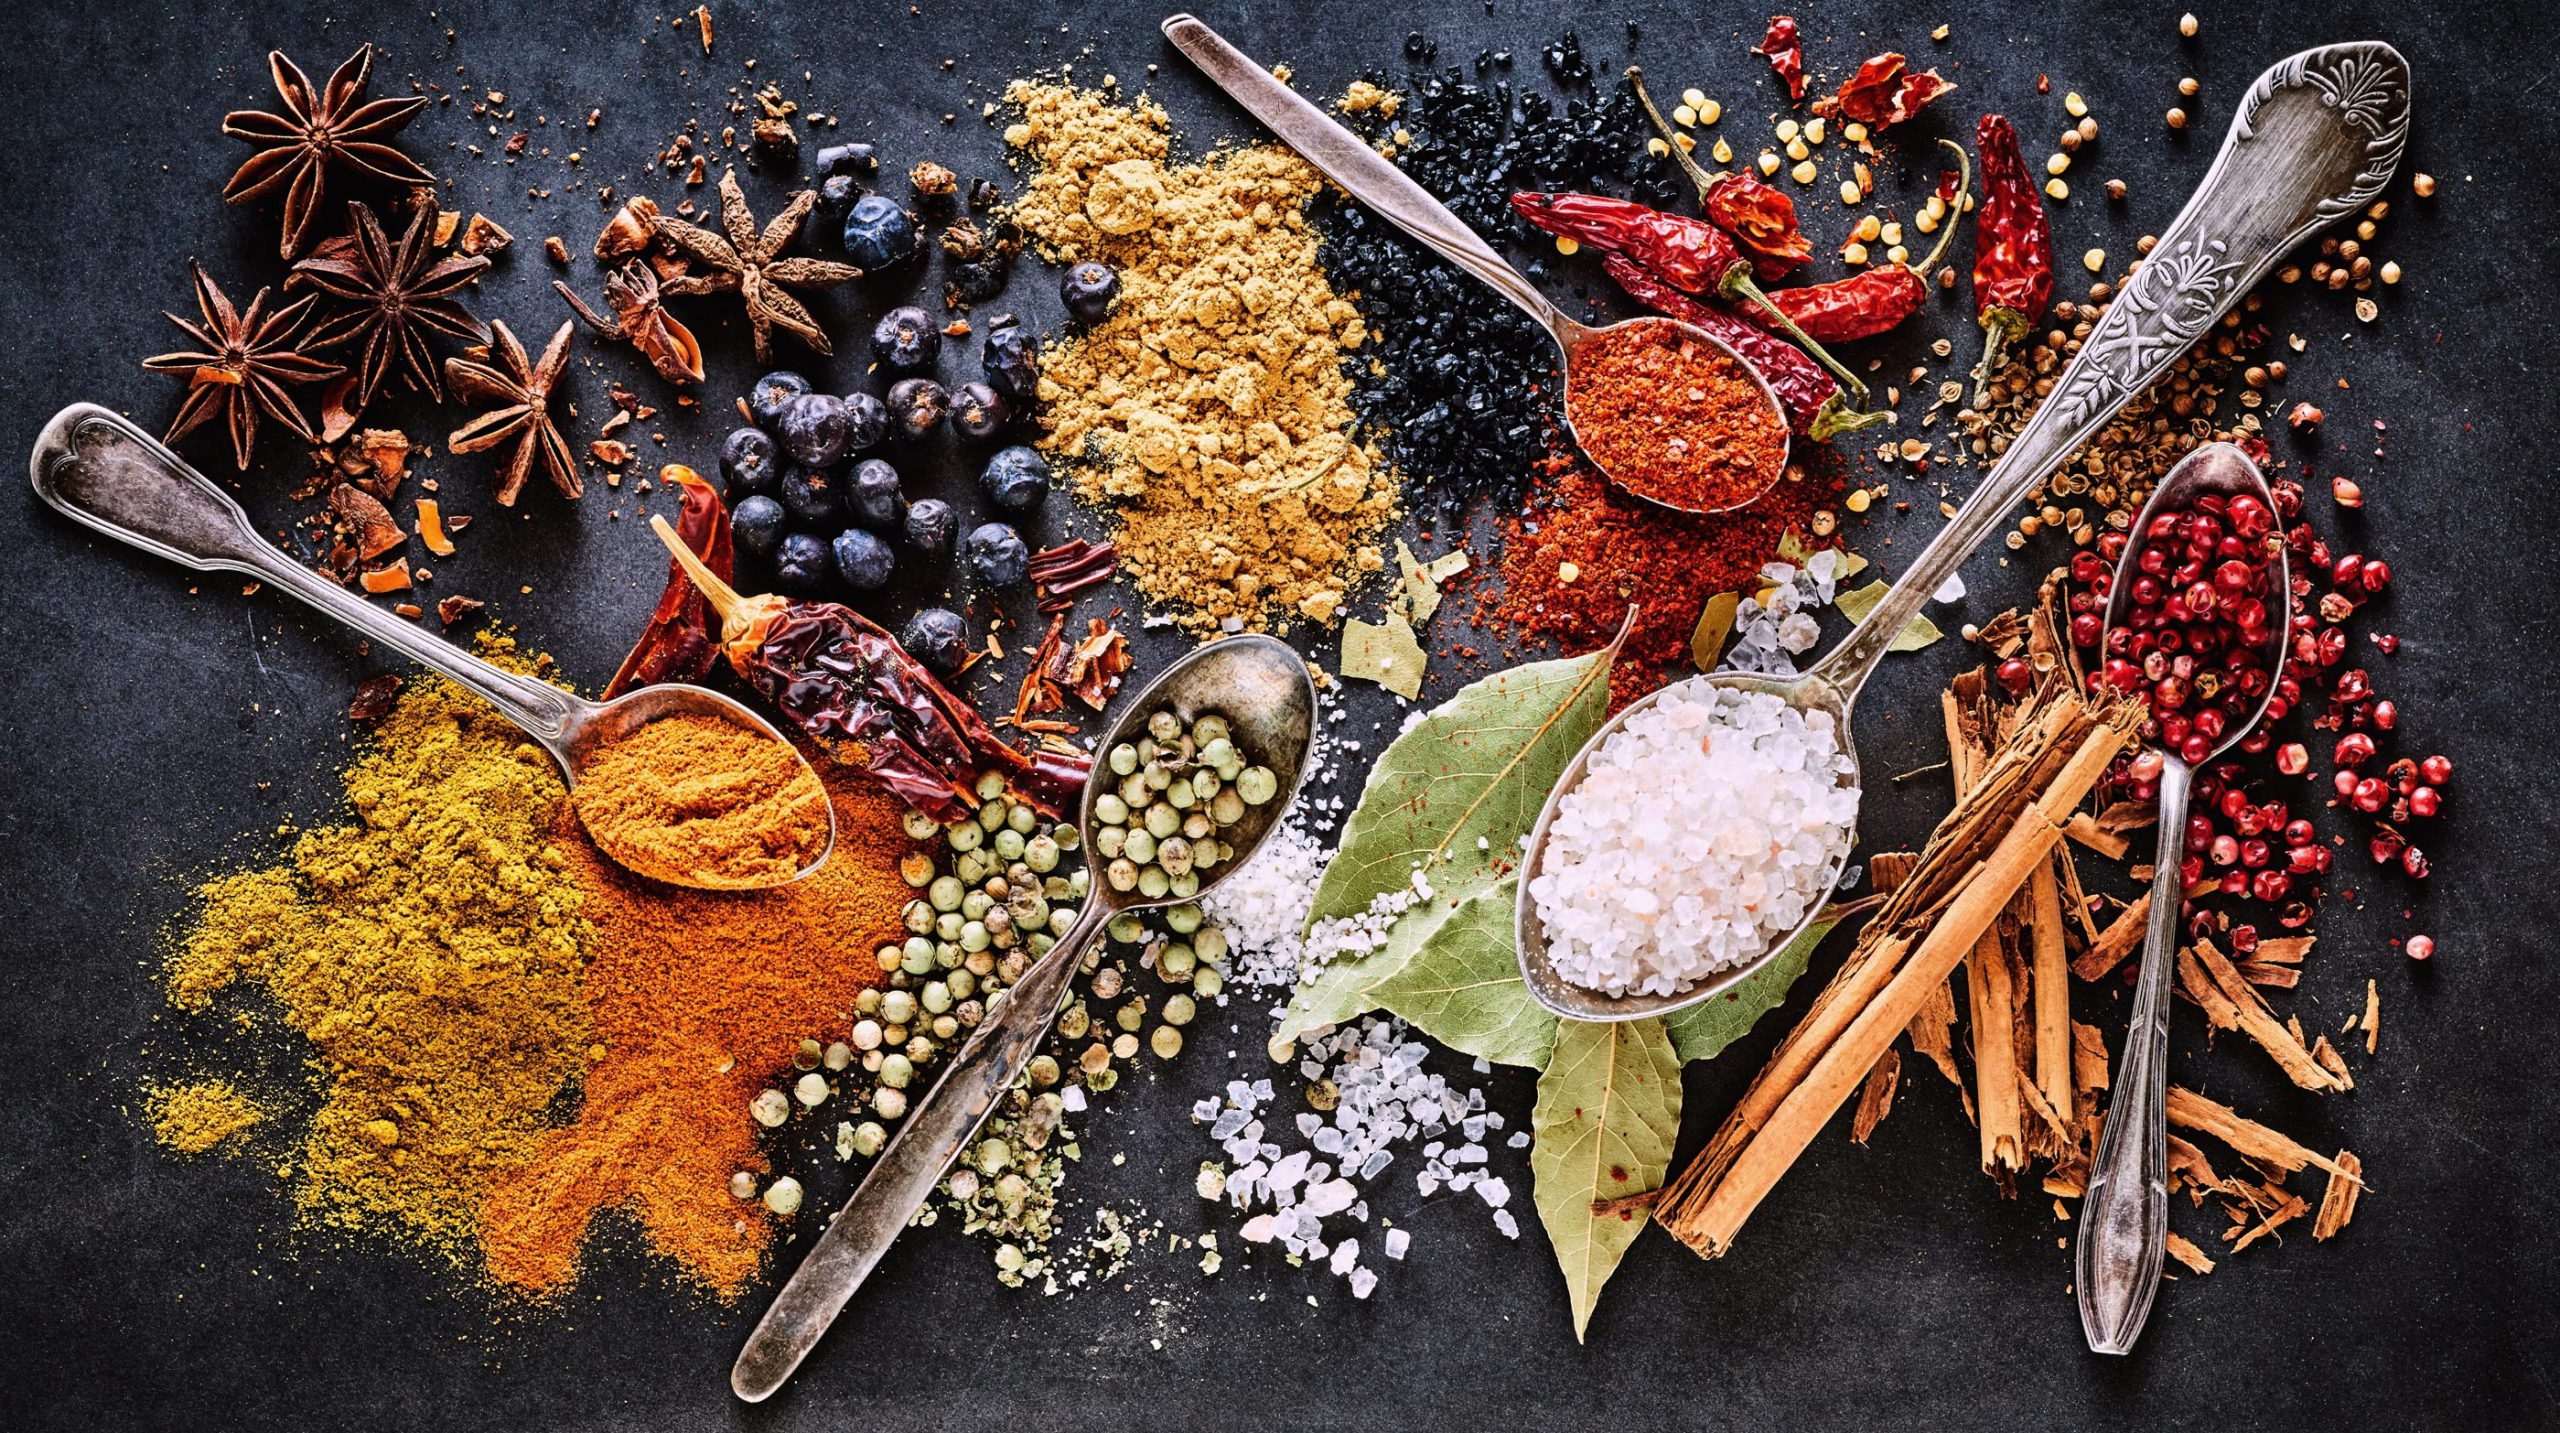 Spicing Up A Kidney-Friendly Diet - Exotic New Flavors to Add to Your Spice Cabinet